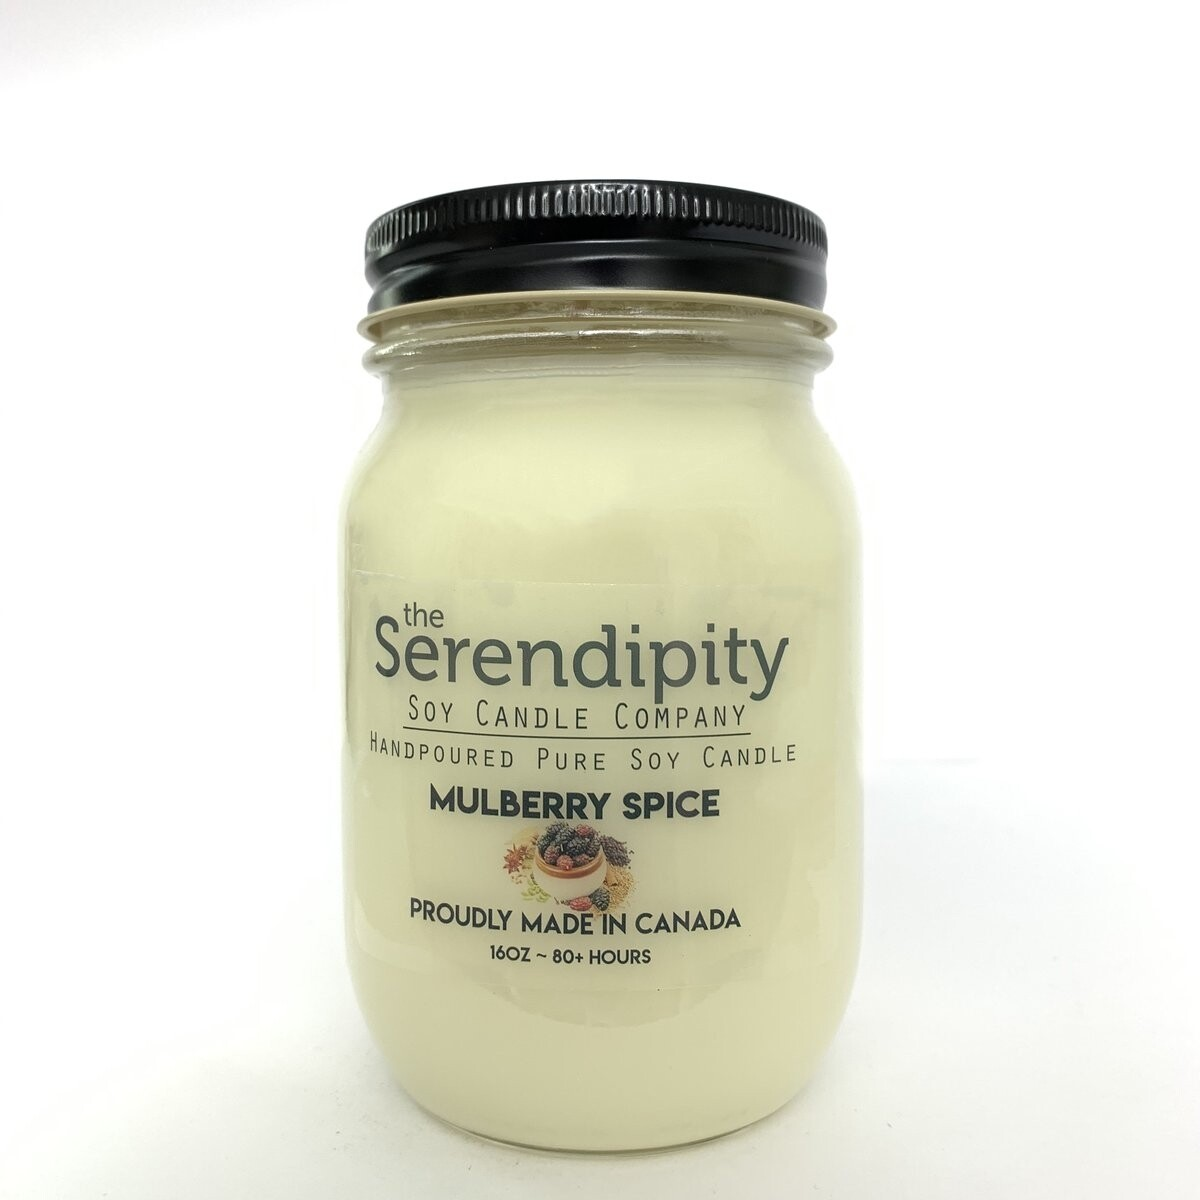 Serendipity 16 oz Soy Candle Jar   Mulberry Spice